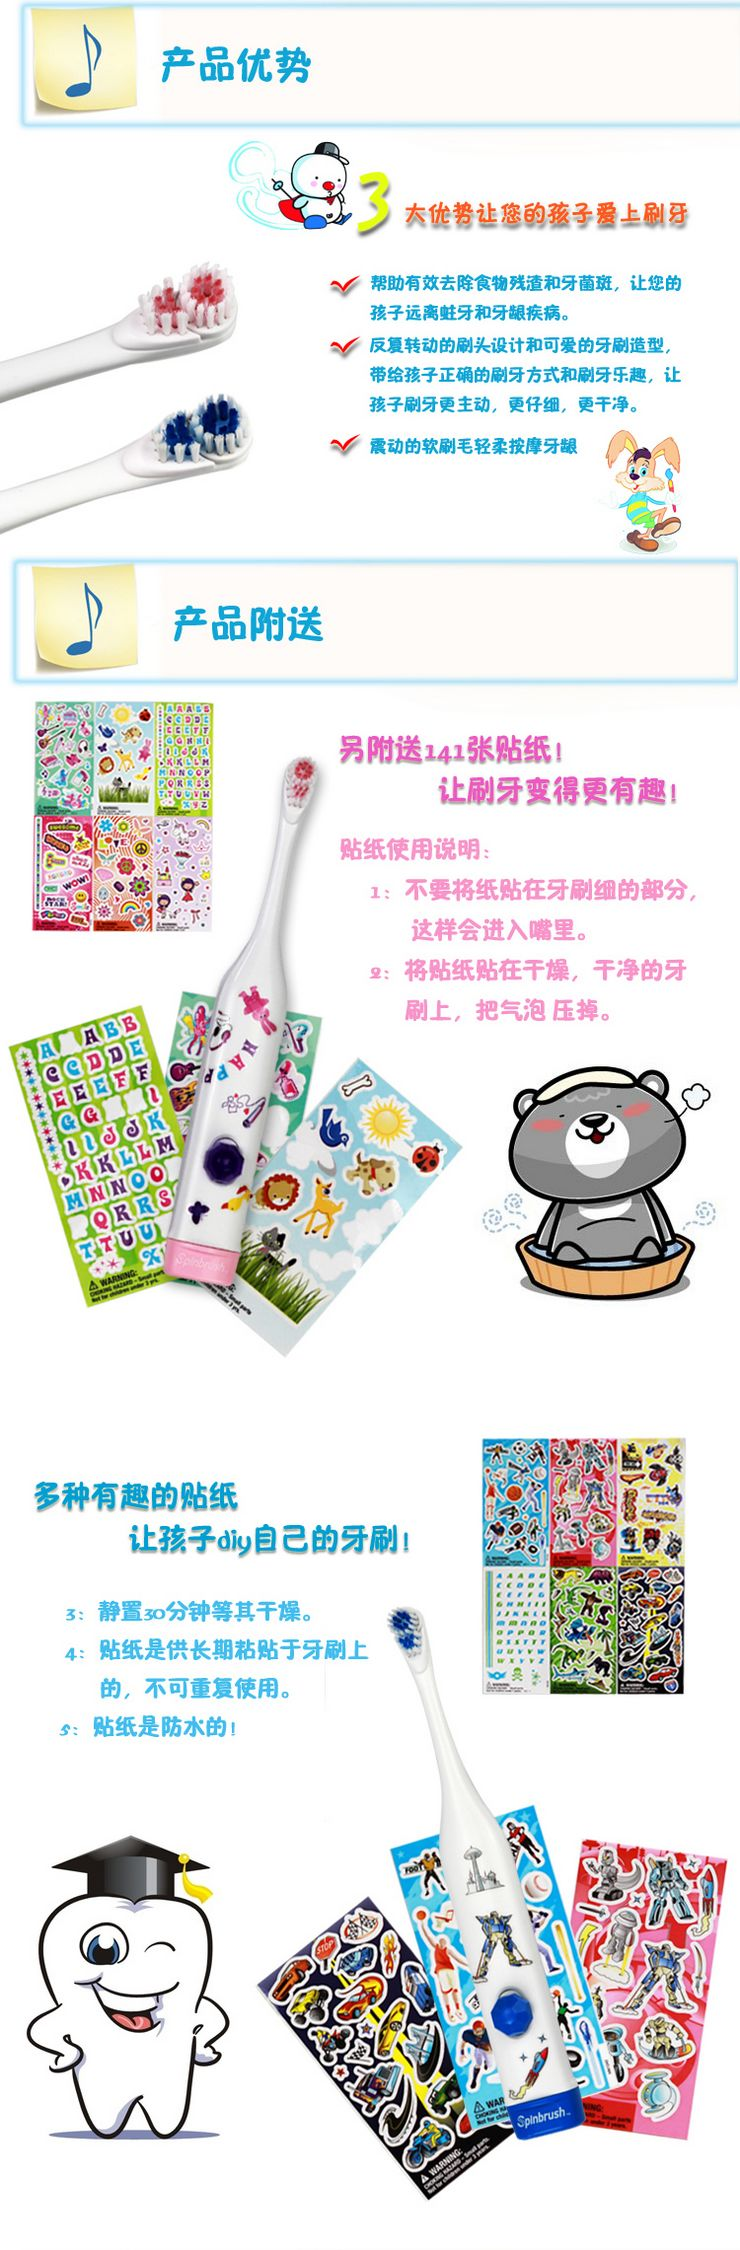 Ai Wo Mei Xuan Jie Family Packs (AWD professional electric toothbrush electric toothbrush MYWAY children)